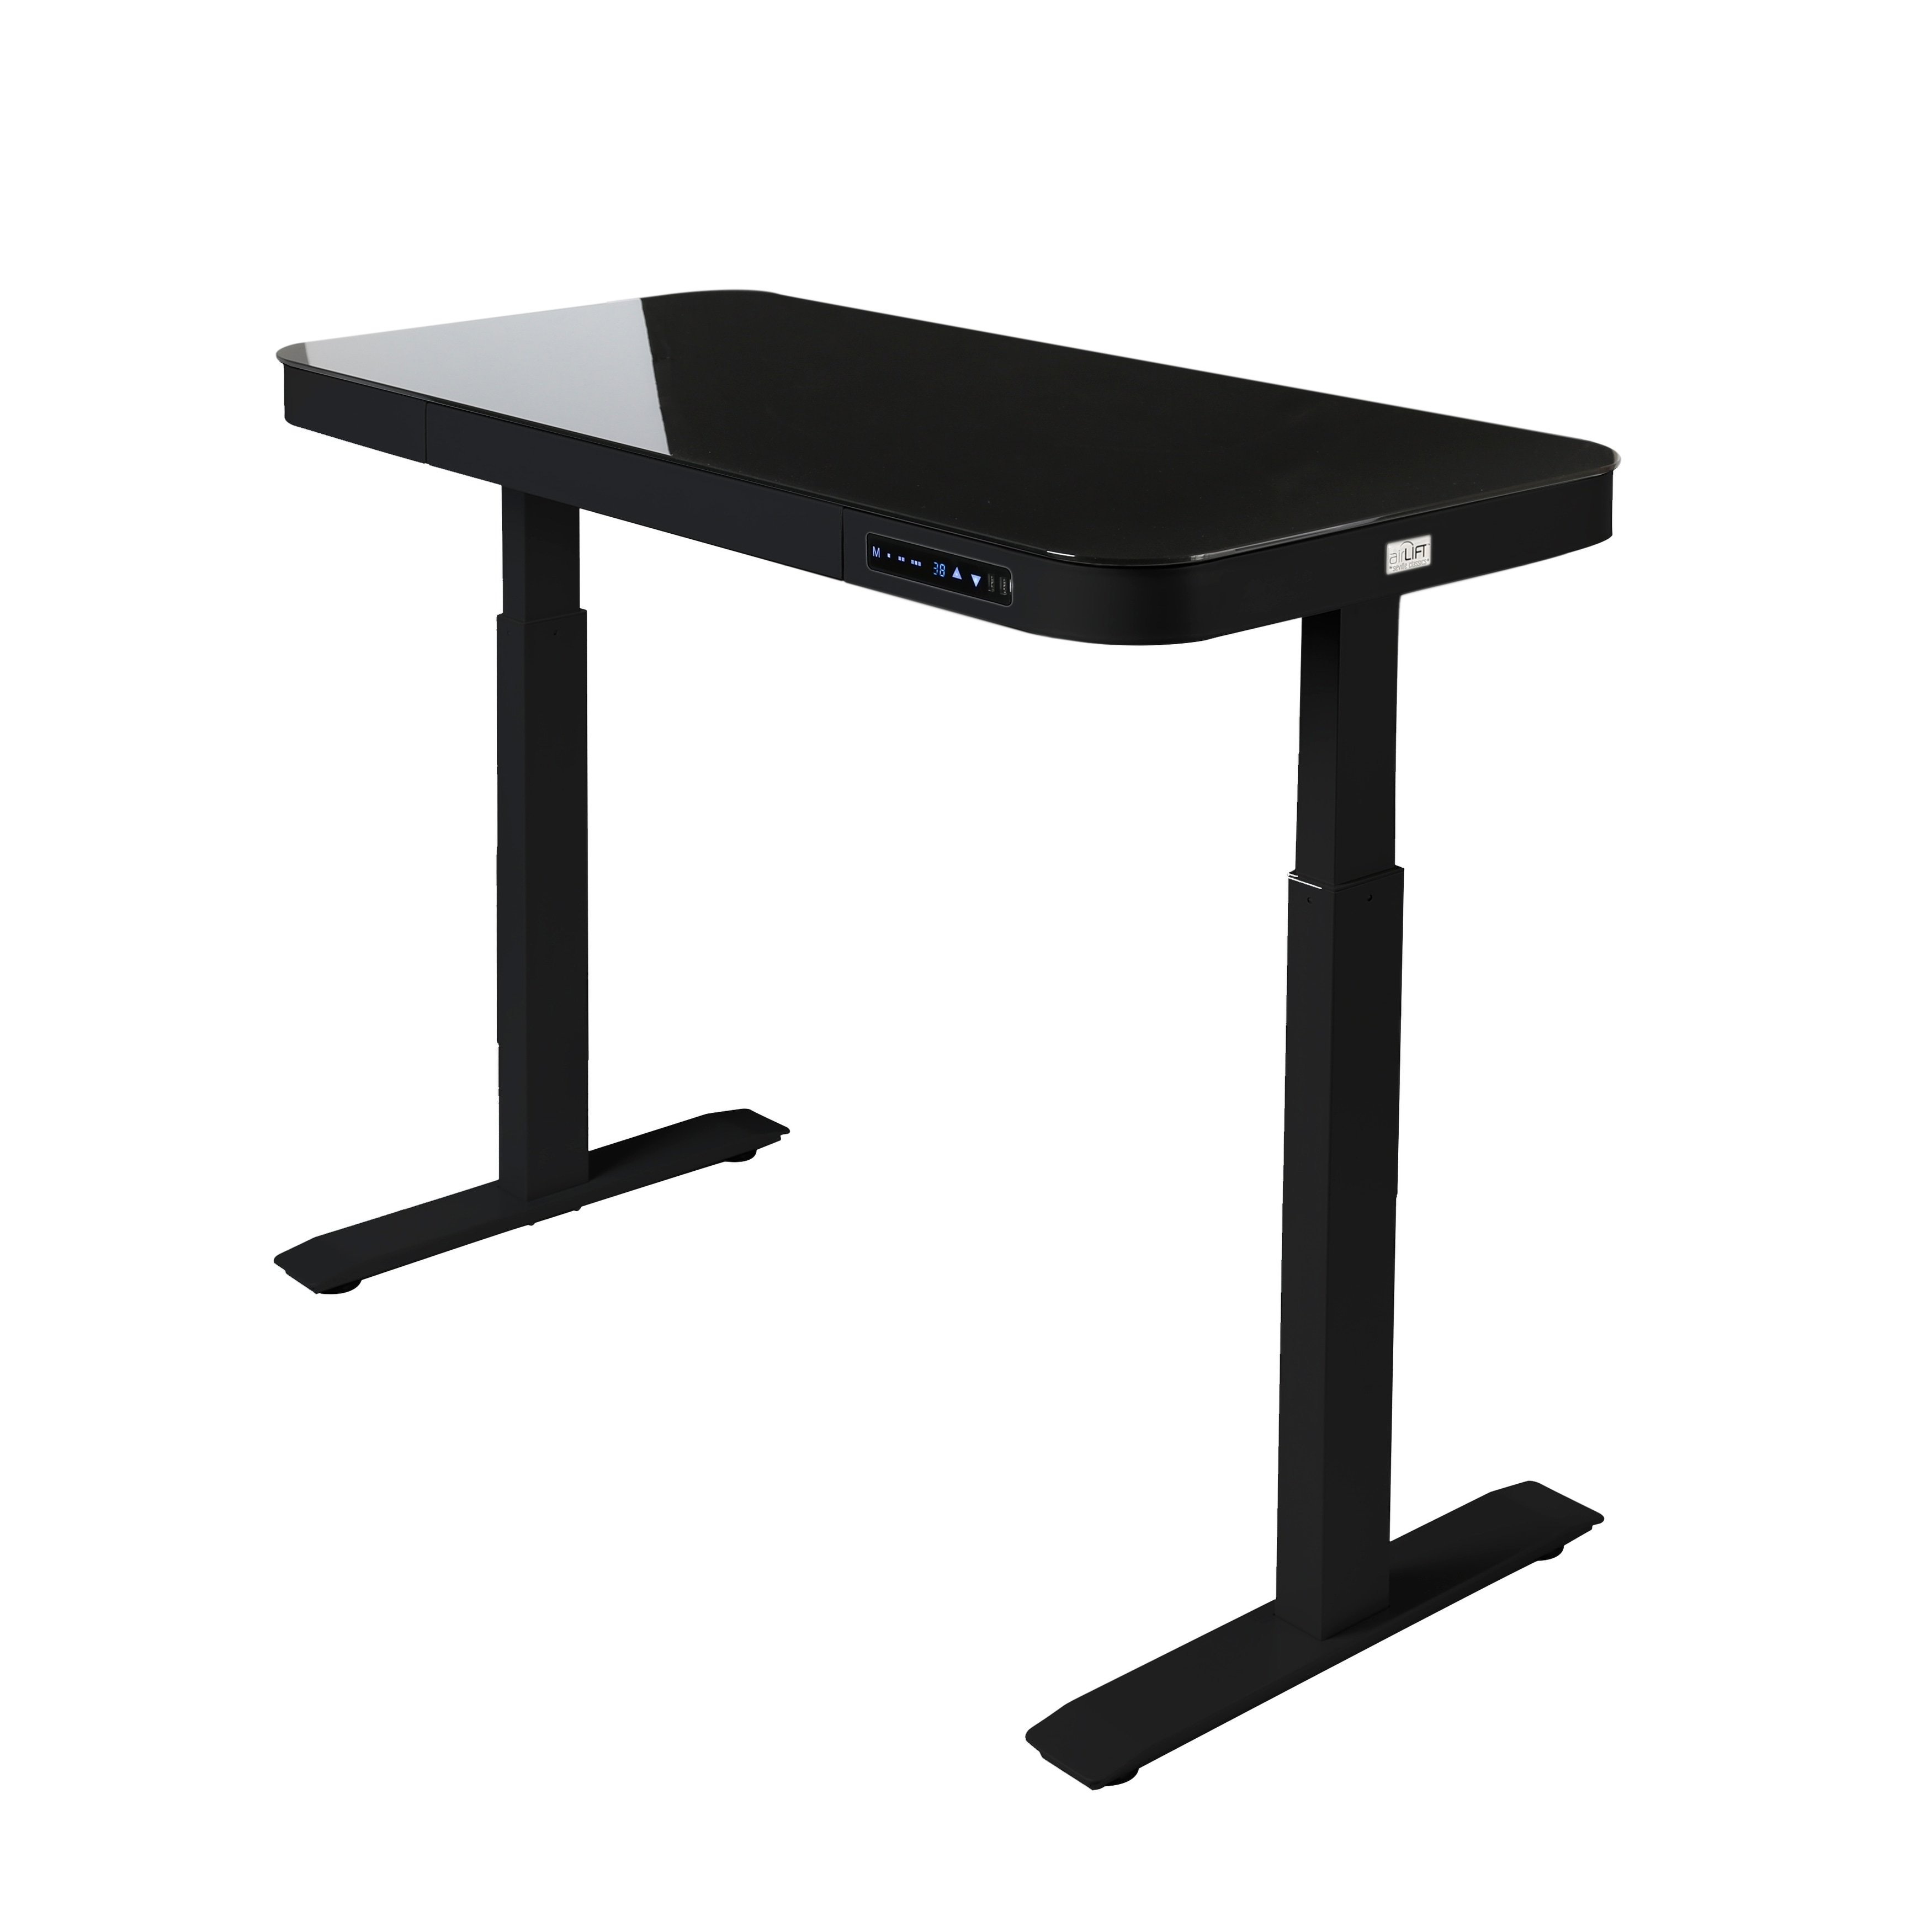 brand new ac206 2a29e AIRLIFT 47 in Tempered Glass Electric Standing Desk Top Dual 2.4A USB  Charging Port Height Adjustable to 47 in H